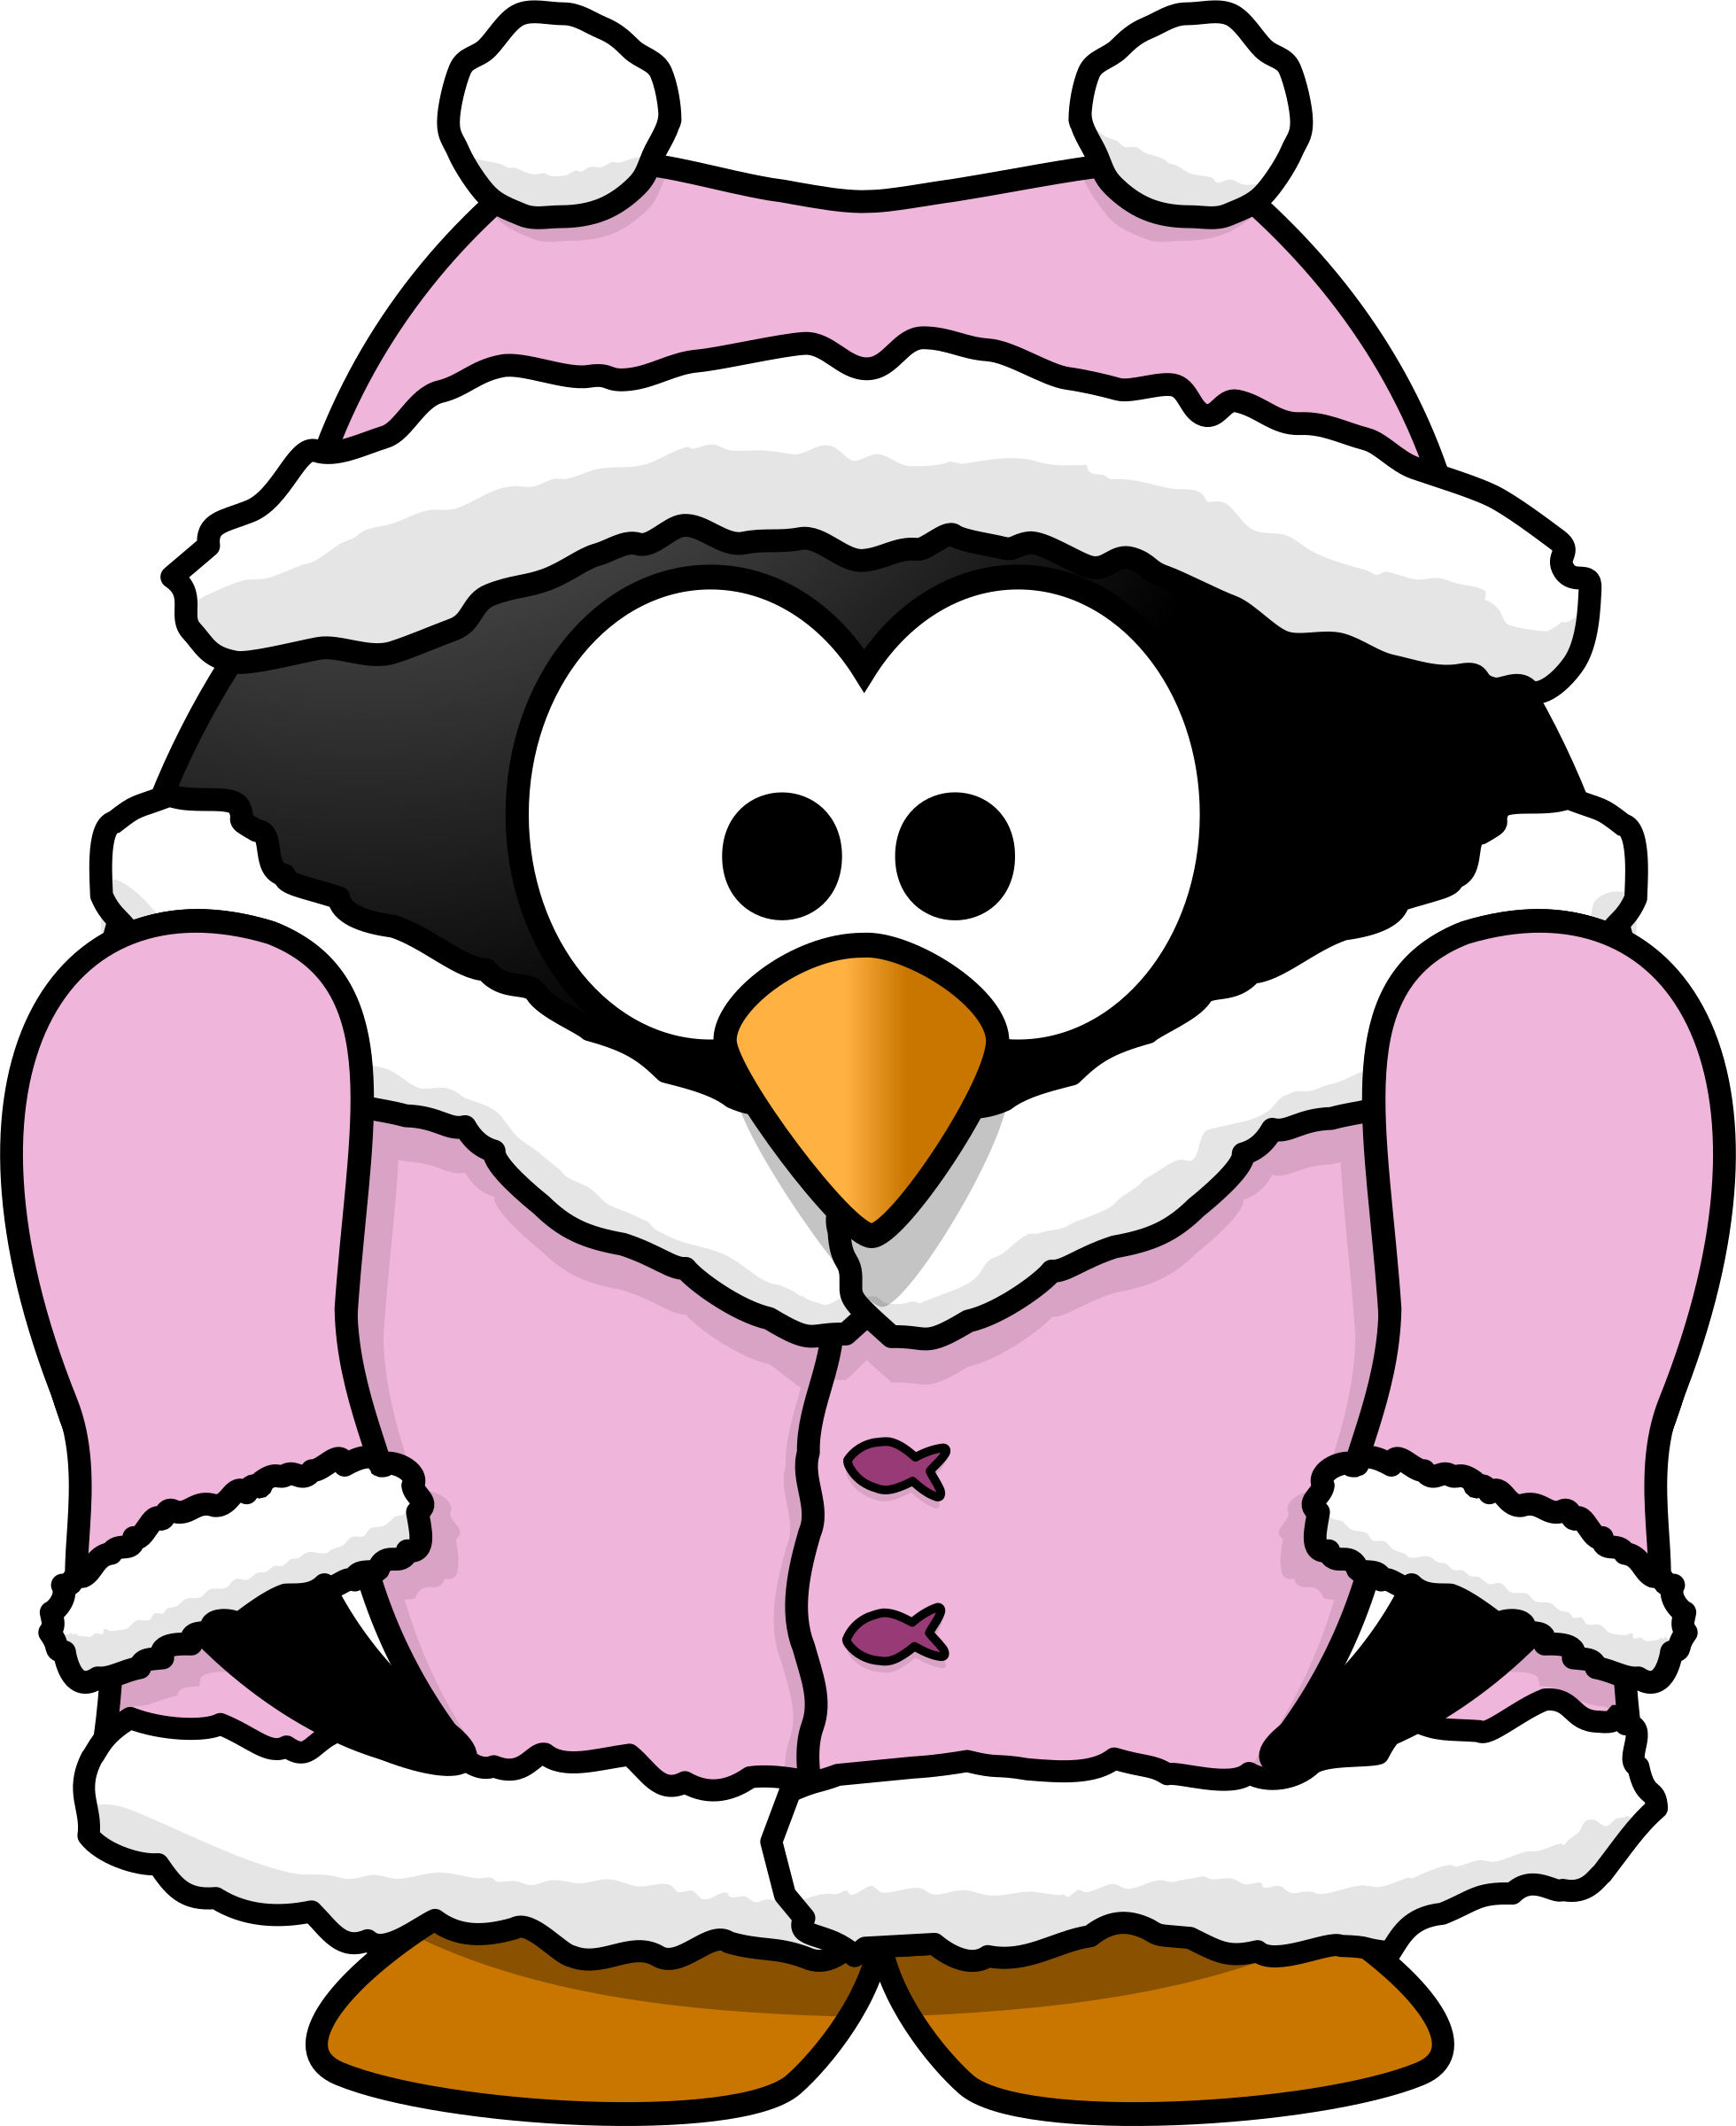 Christmas penguin family clipart clip art download Winter Animals Clipart at GetDrawings.com | Free for personal use ... clip art download